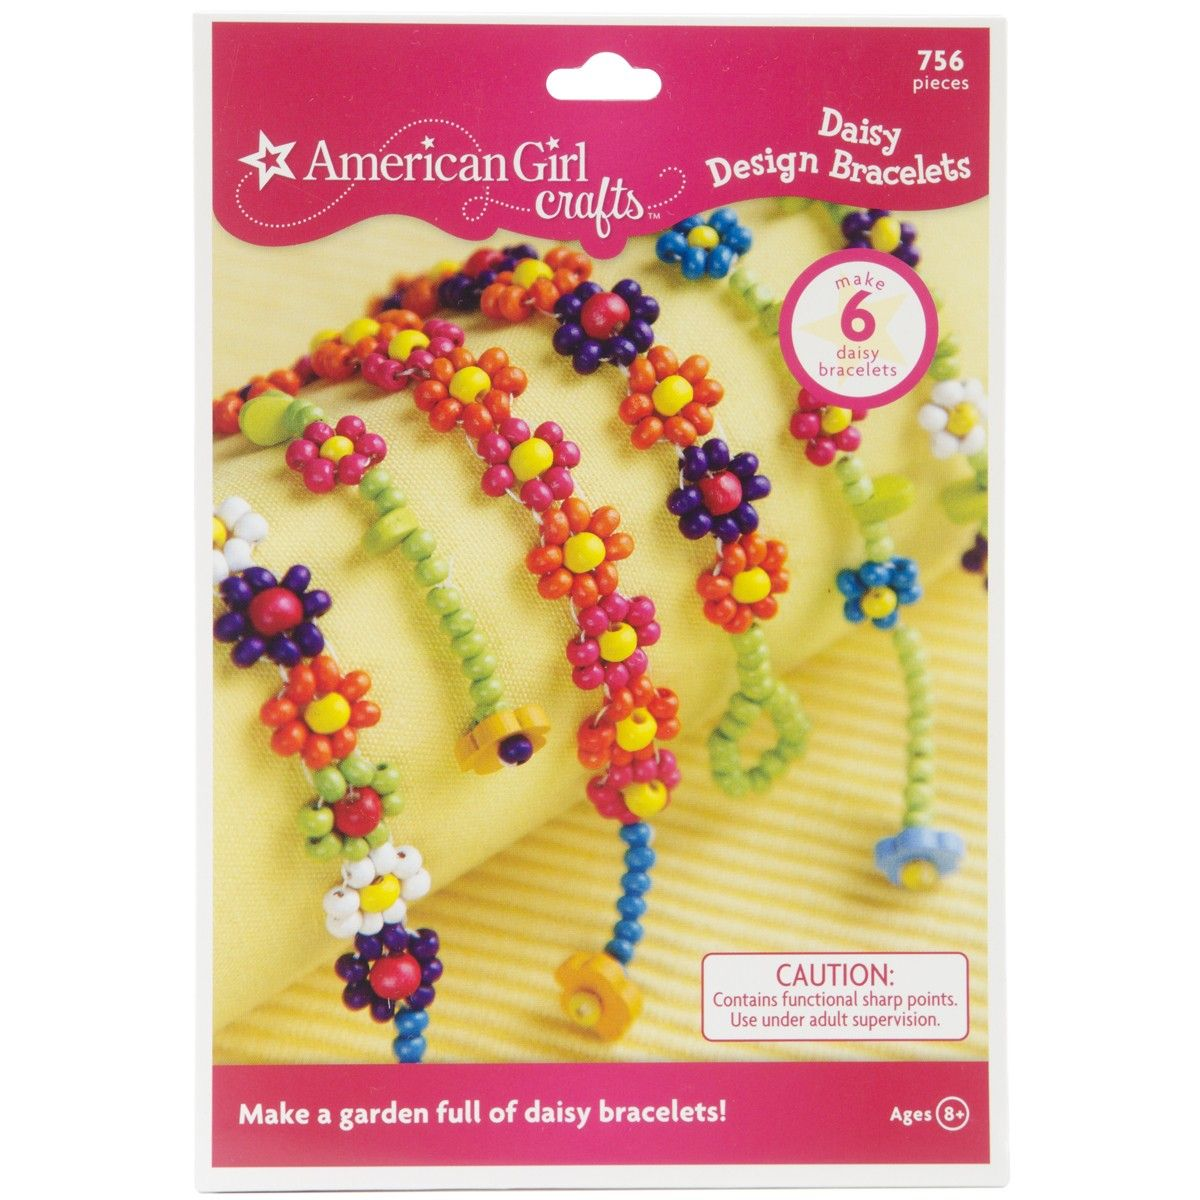 Daisy design bracelets bead two different styles of colorful daisy